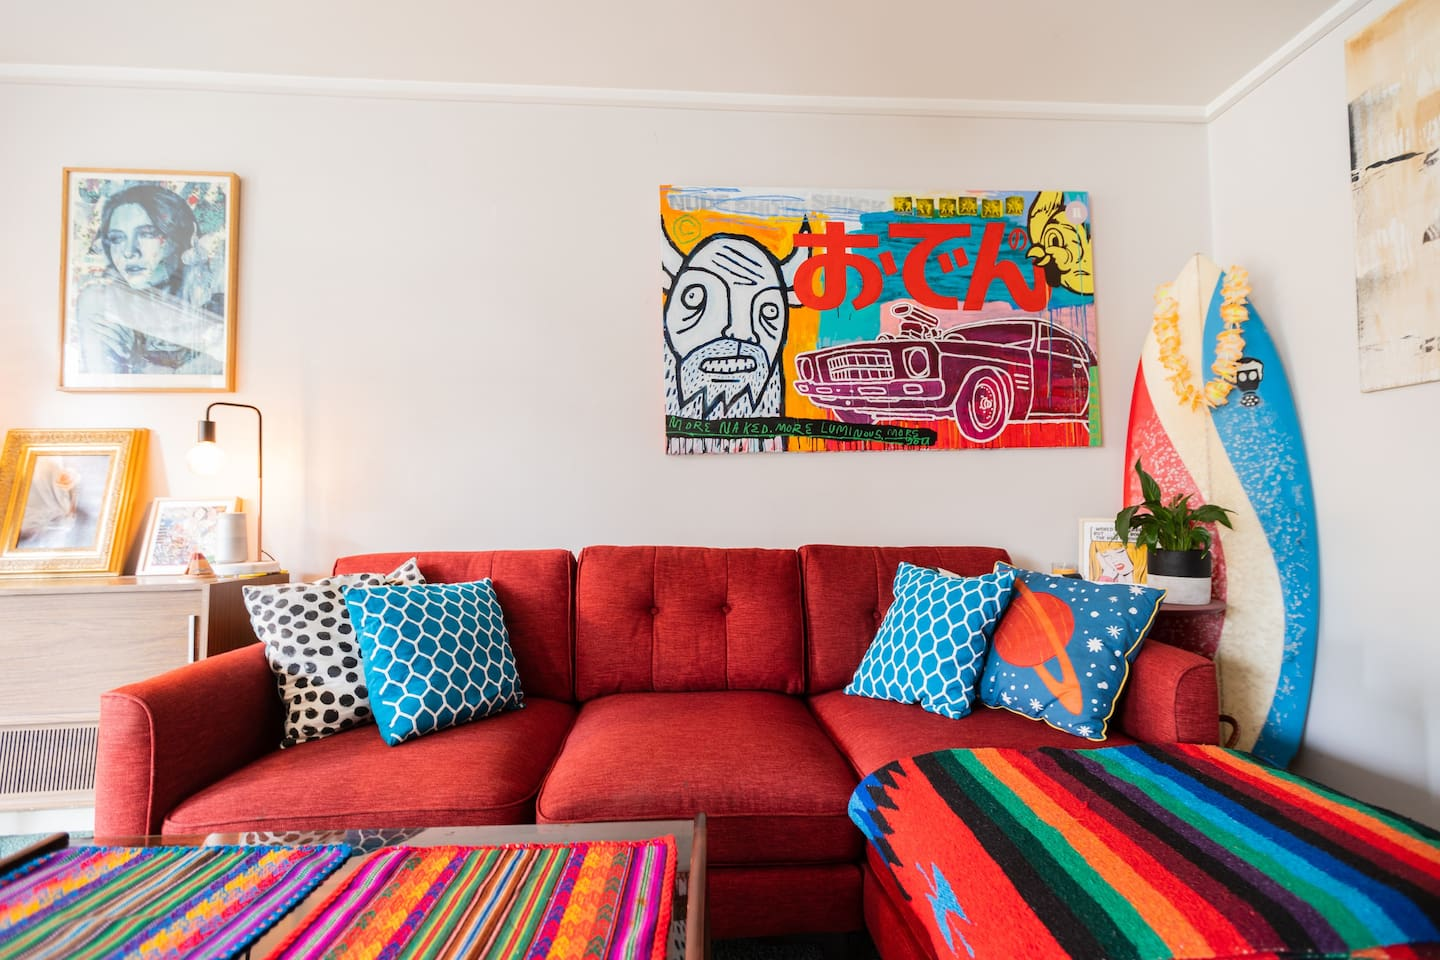 Welcome to our home. Lots of little artistic touches aroud the apartment. Fitzroy is an amazing suburb just north of the CBD.